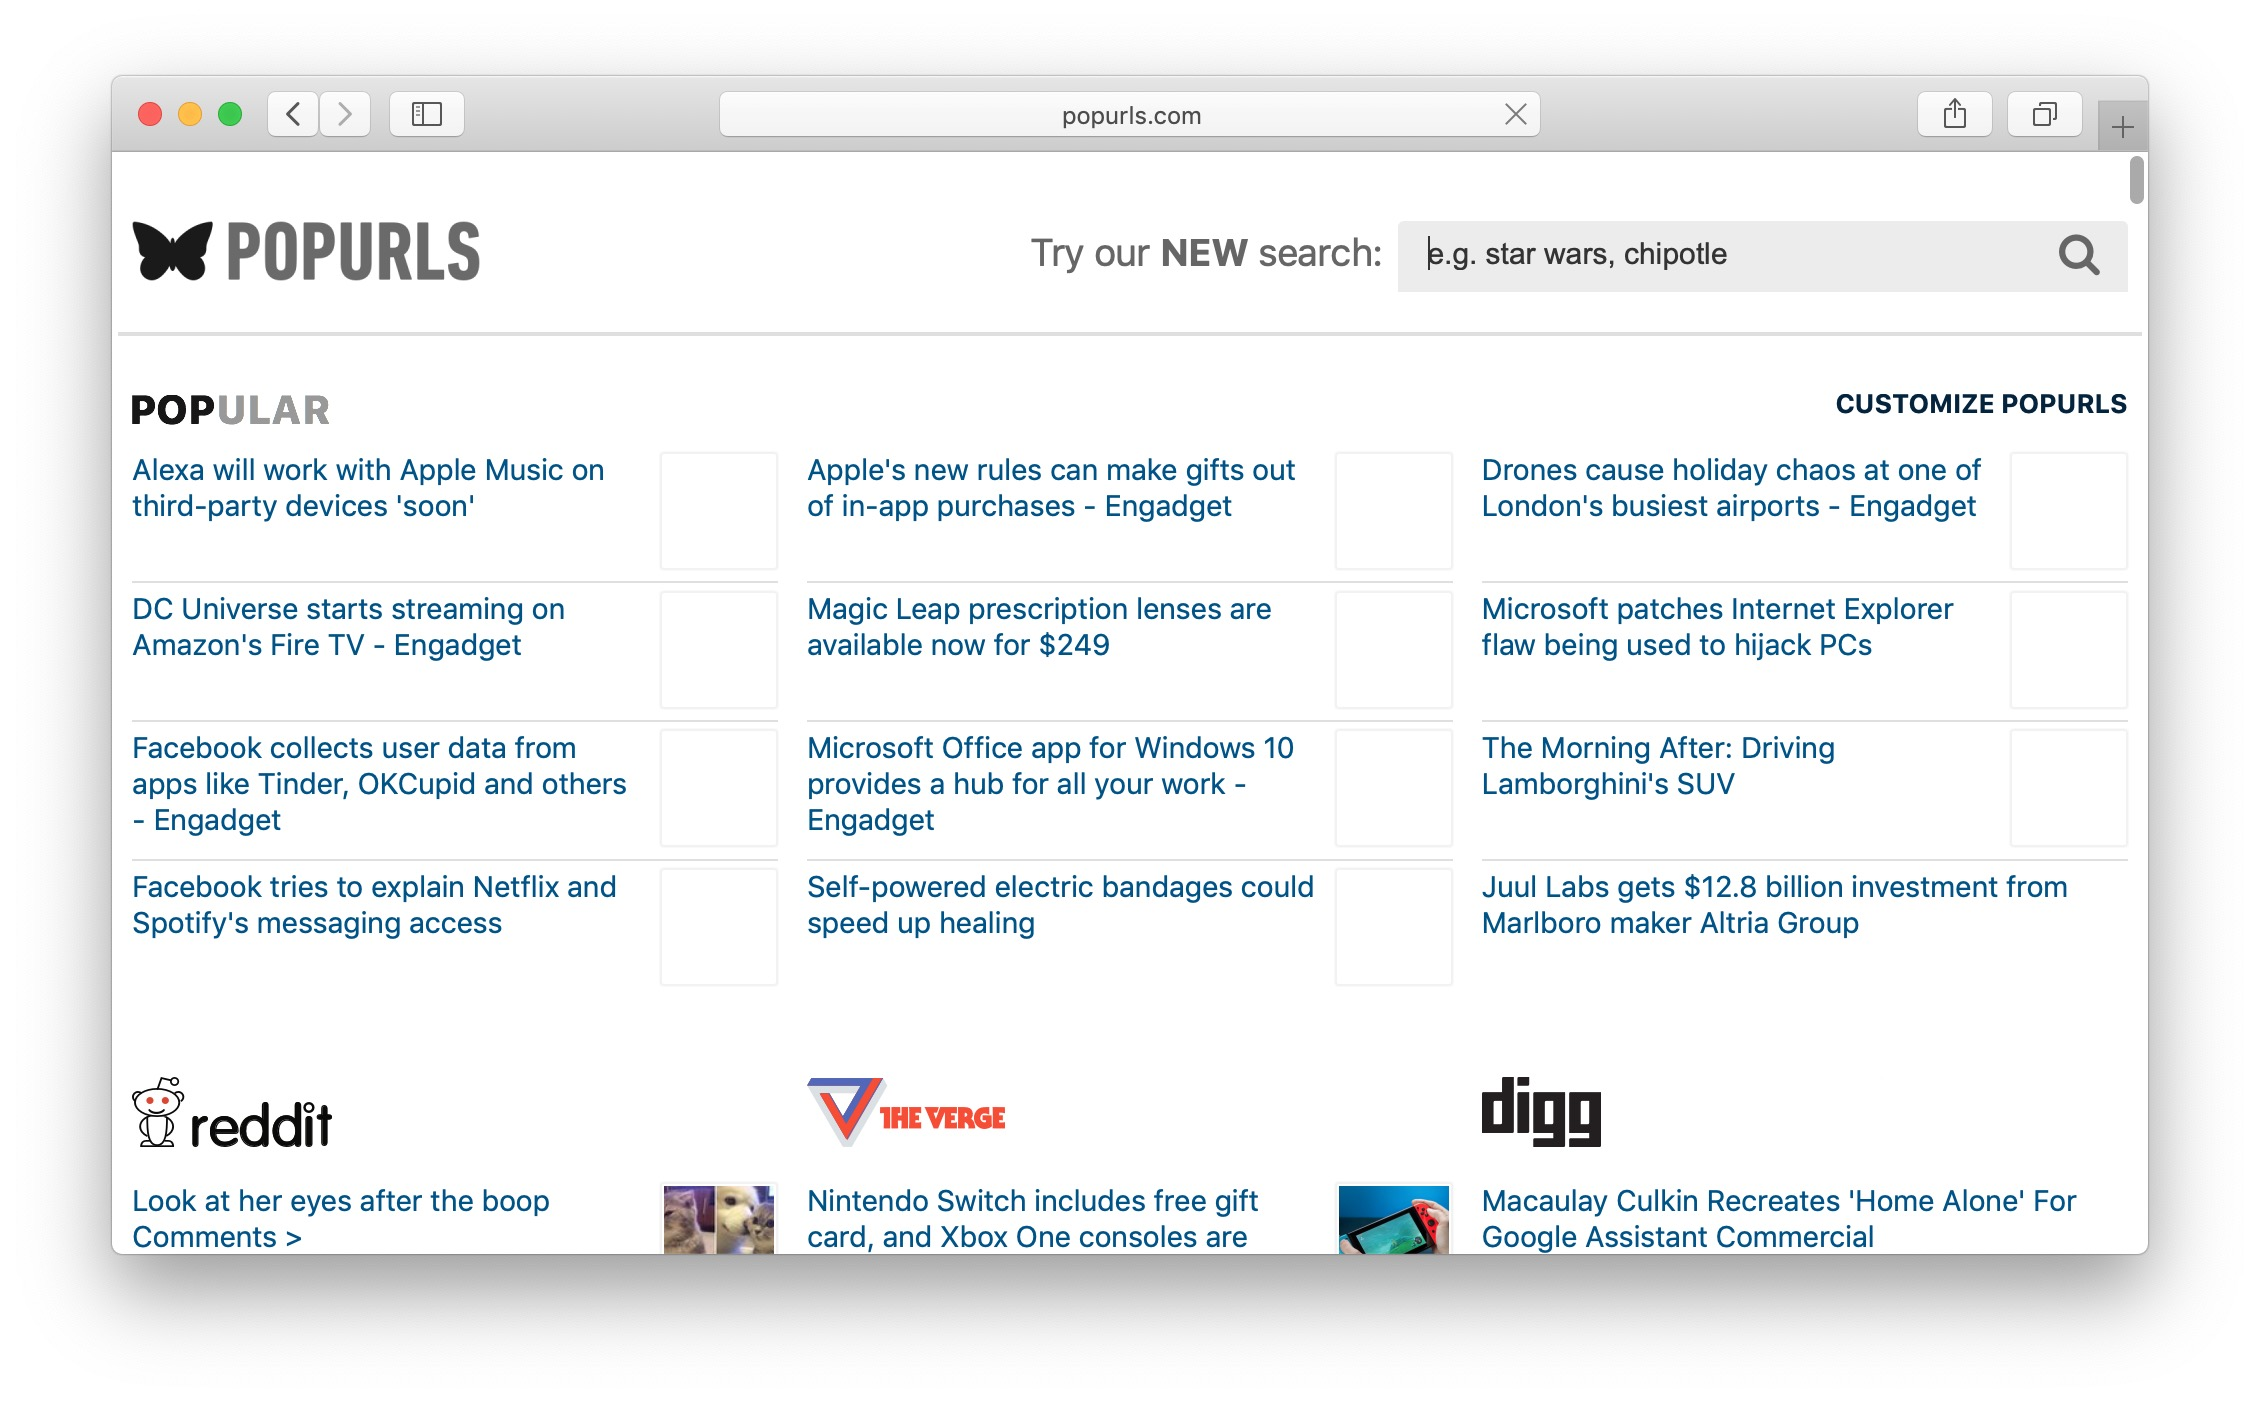 PopUrls is a famous content aggregator